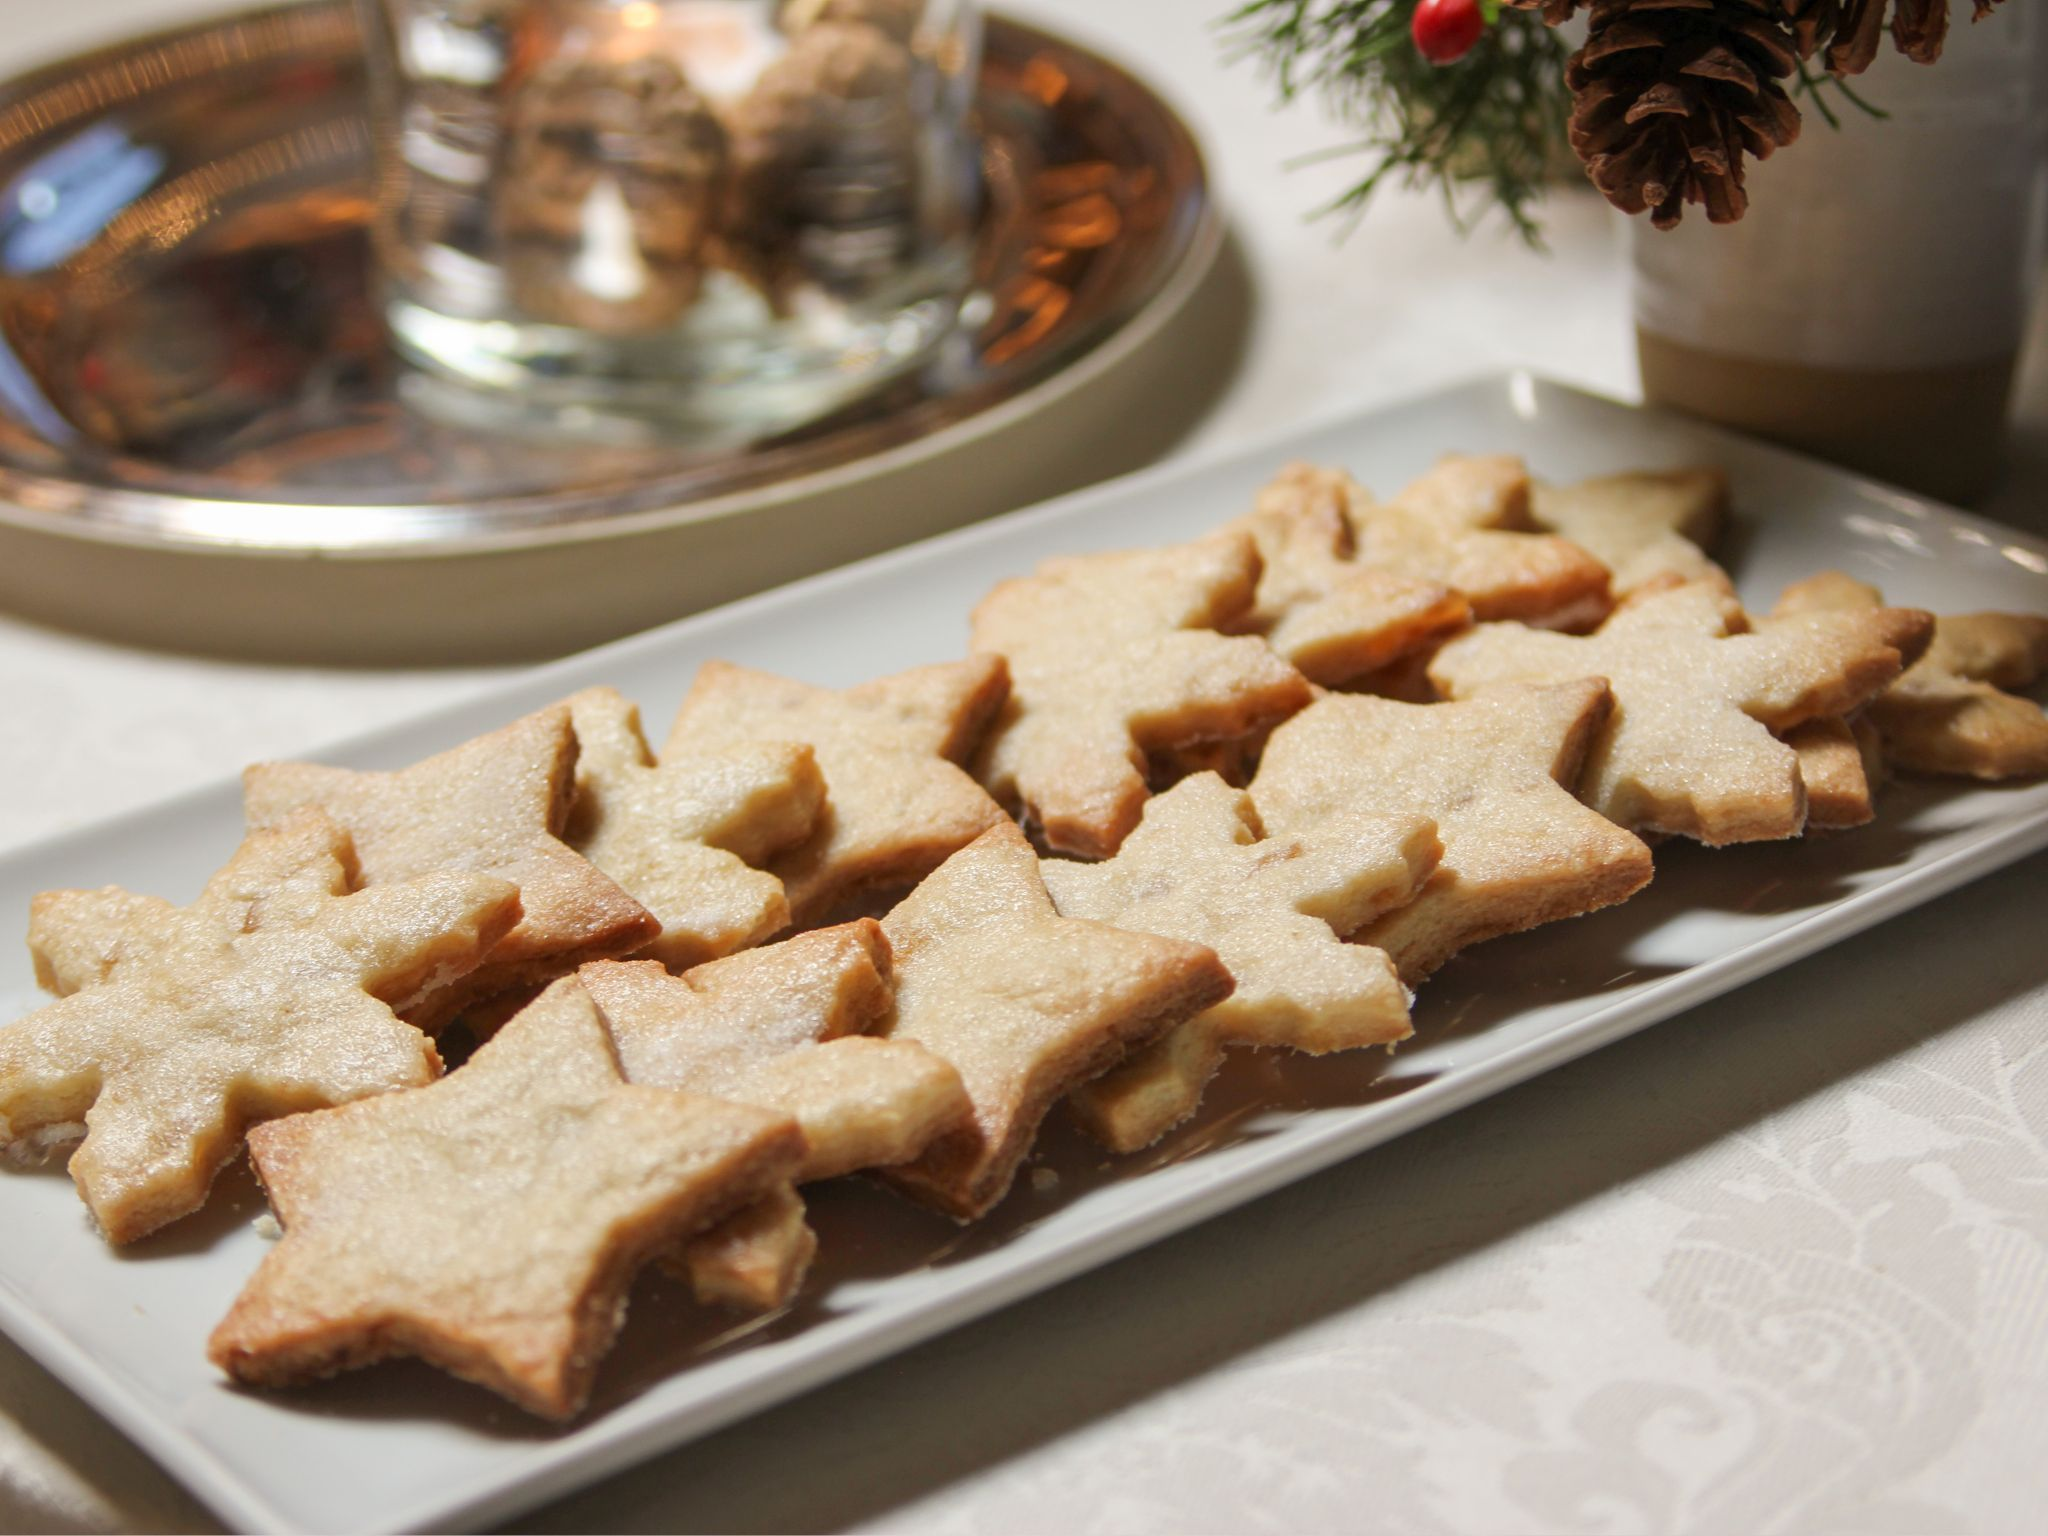 Ginger shortbread recipe shortbread recipes ina garten and garten ginger shortbread recipe from ina garten via food network forumfinder Choice Image